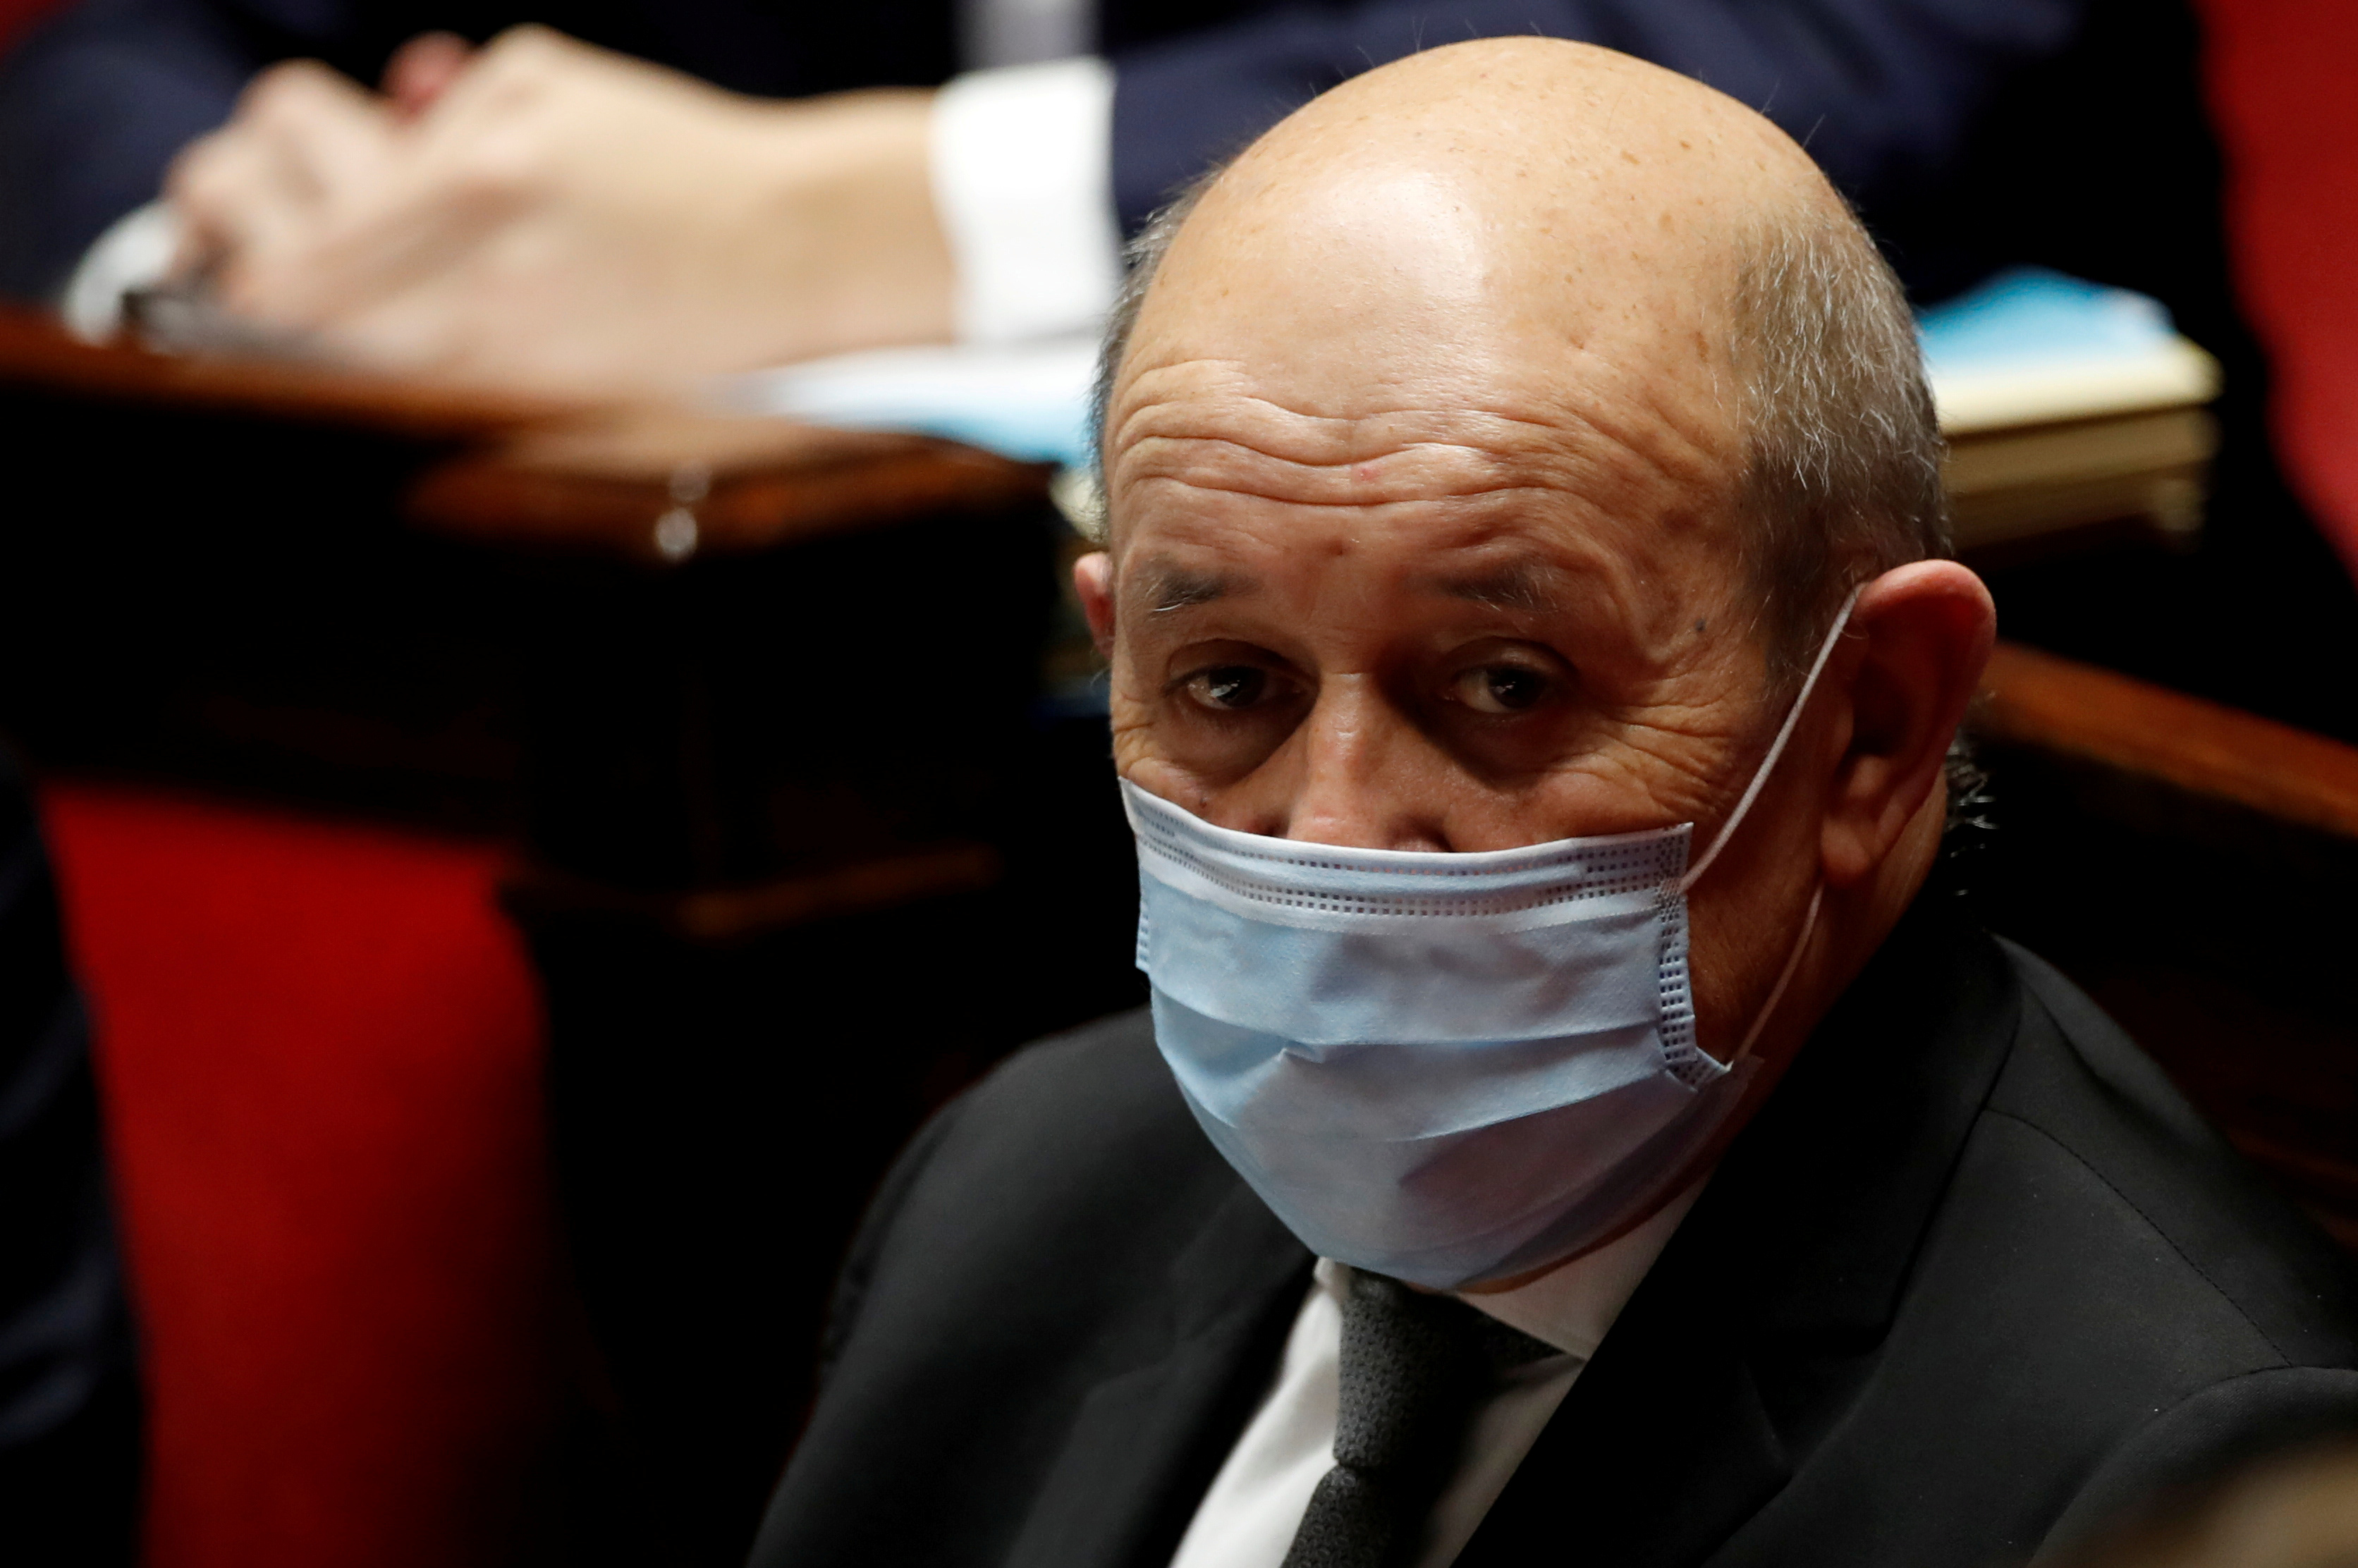 French Foreign Minister Jean Yves Le Drian, wearing a protective face mask, attends the questions to the government session at the National Assembly in Paris amid the coronavirus disease (COVID-19) outbreak in France, January 26, 2021.  REUTERS/Gonzalo Fuentes/File Photo